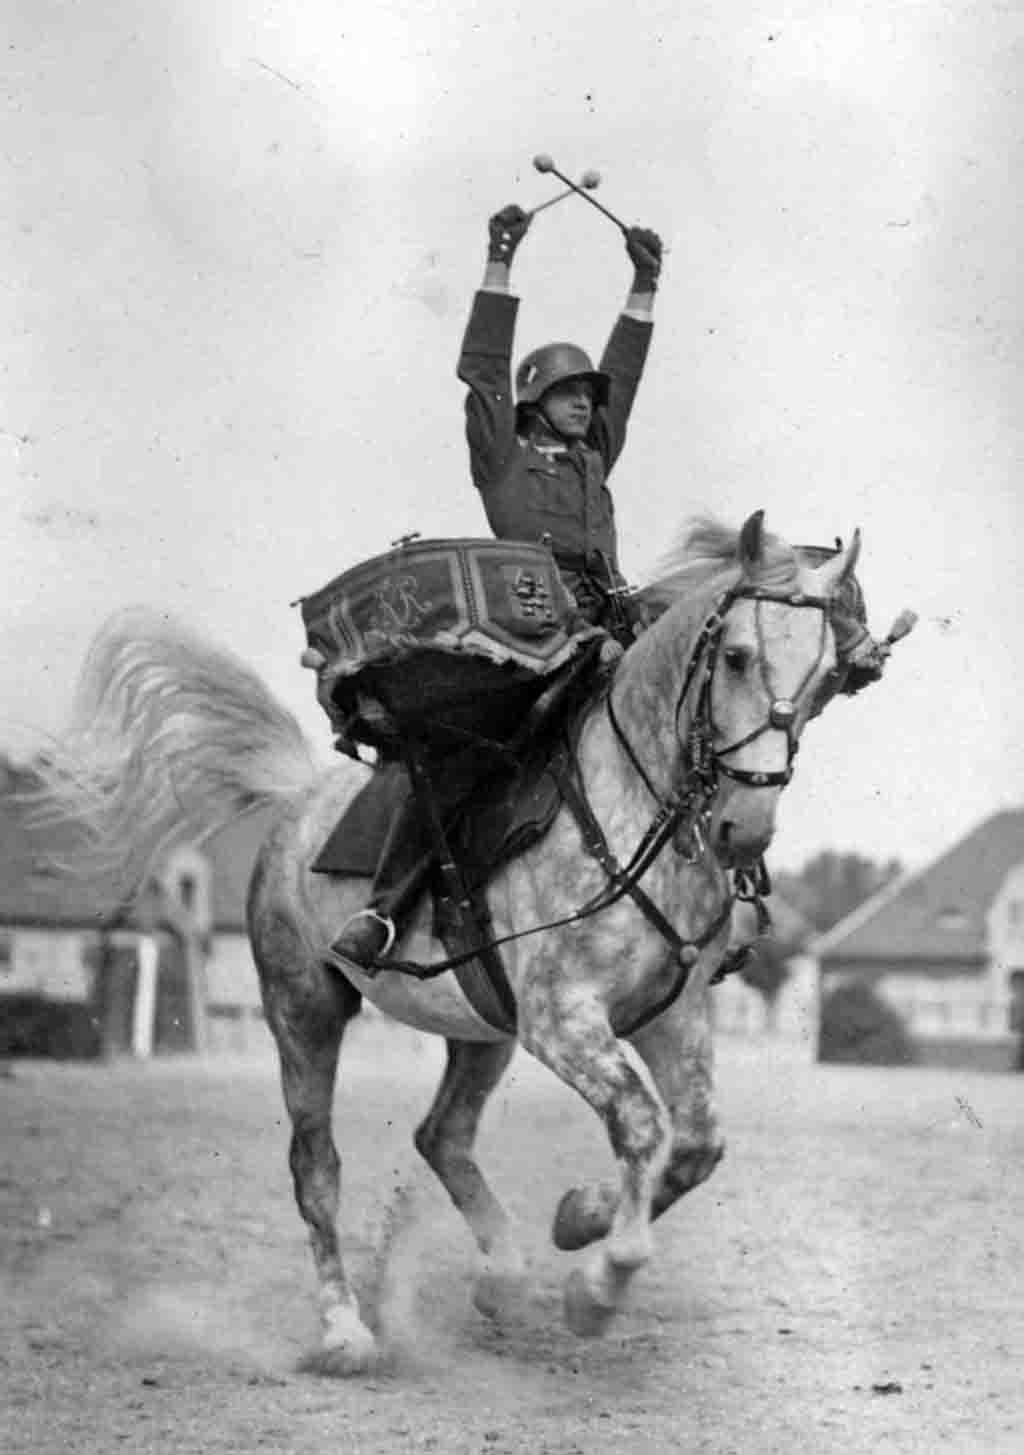 World War 2 - cavalry drummer